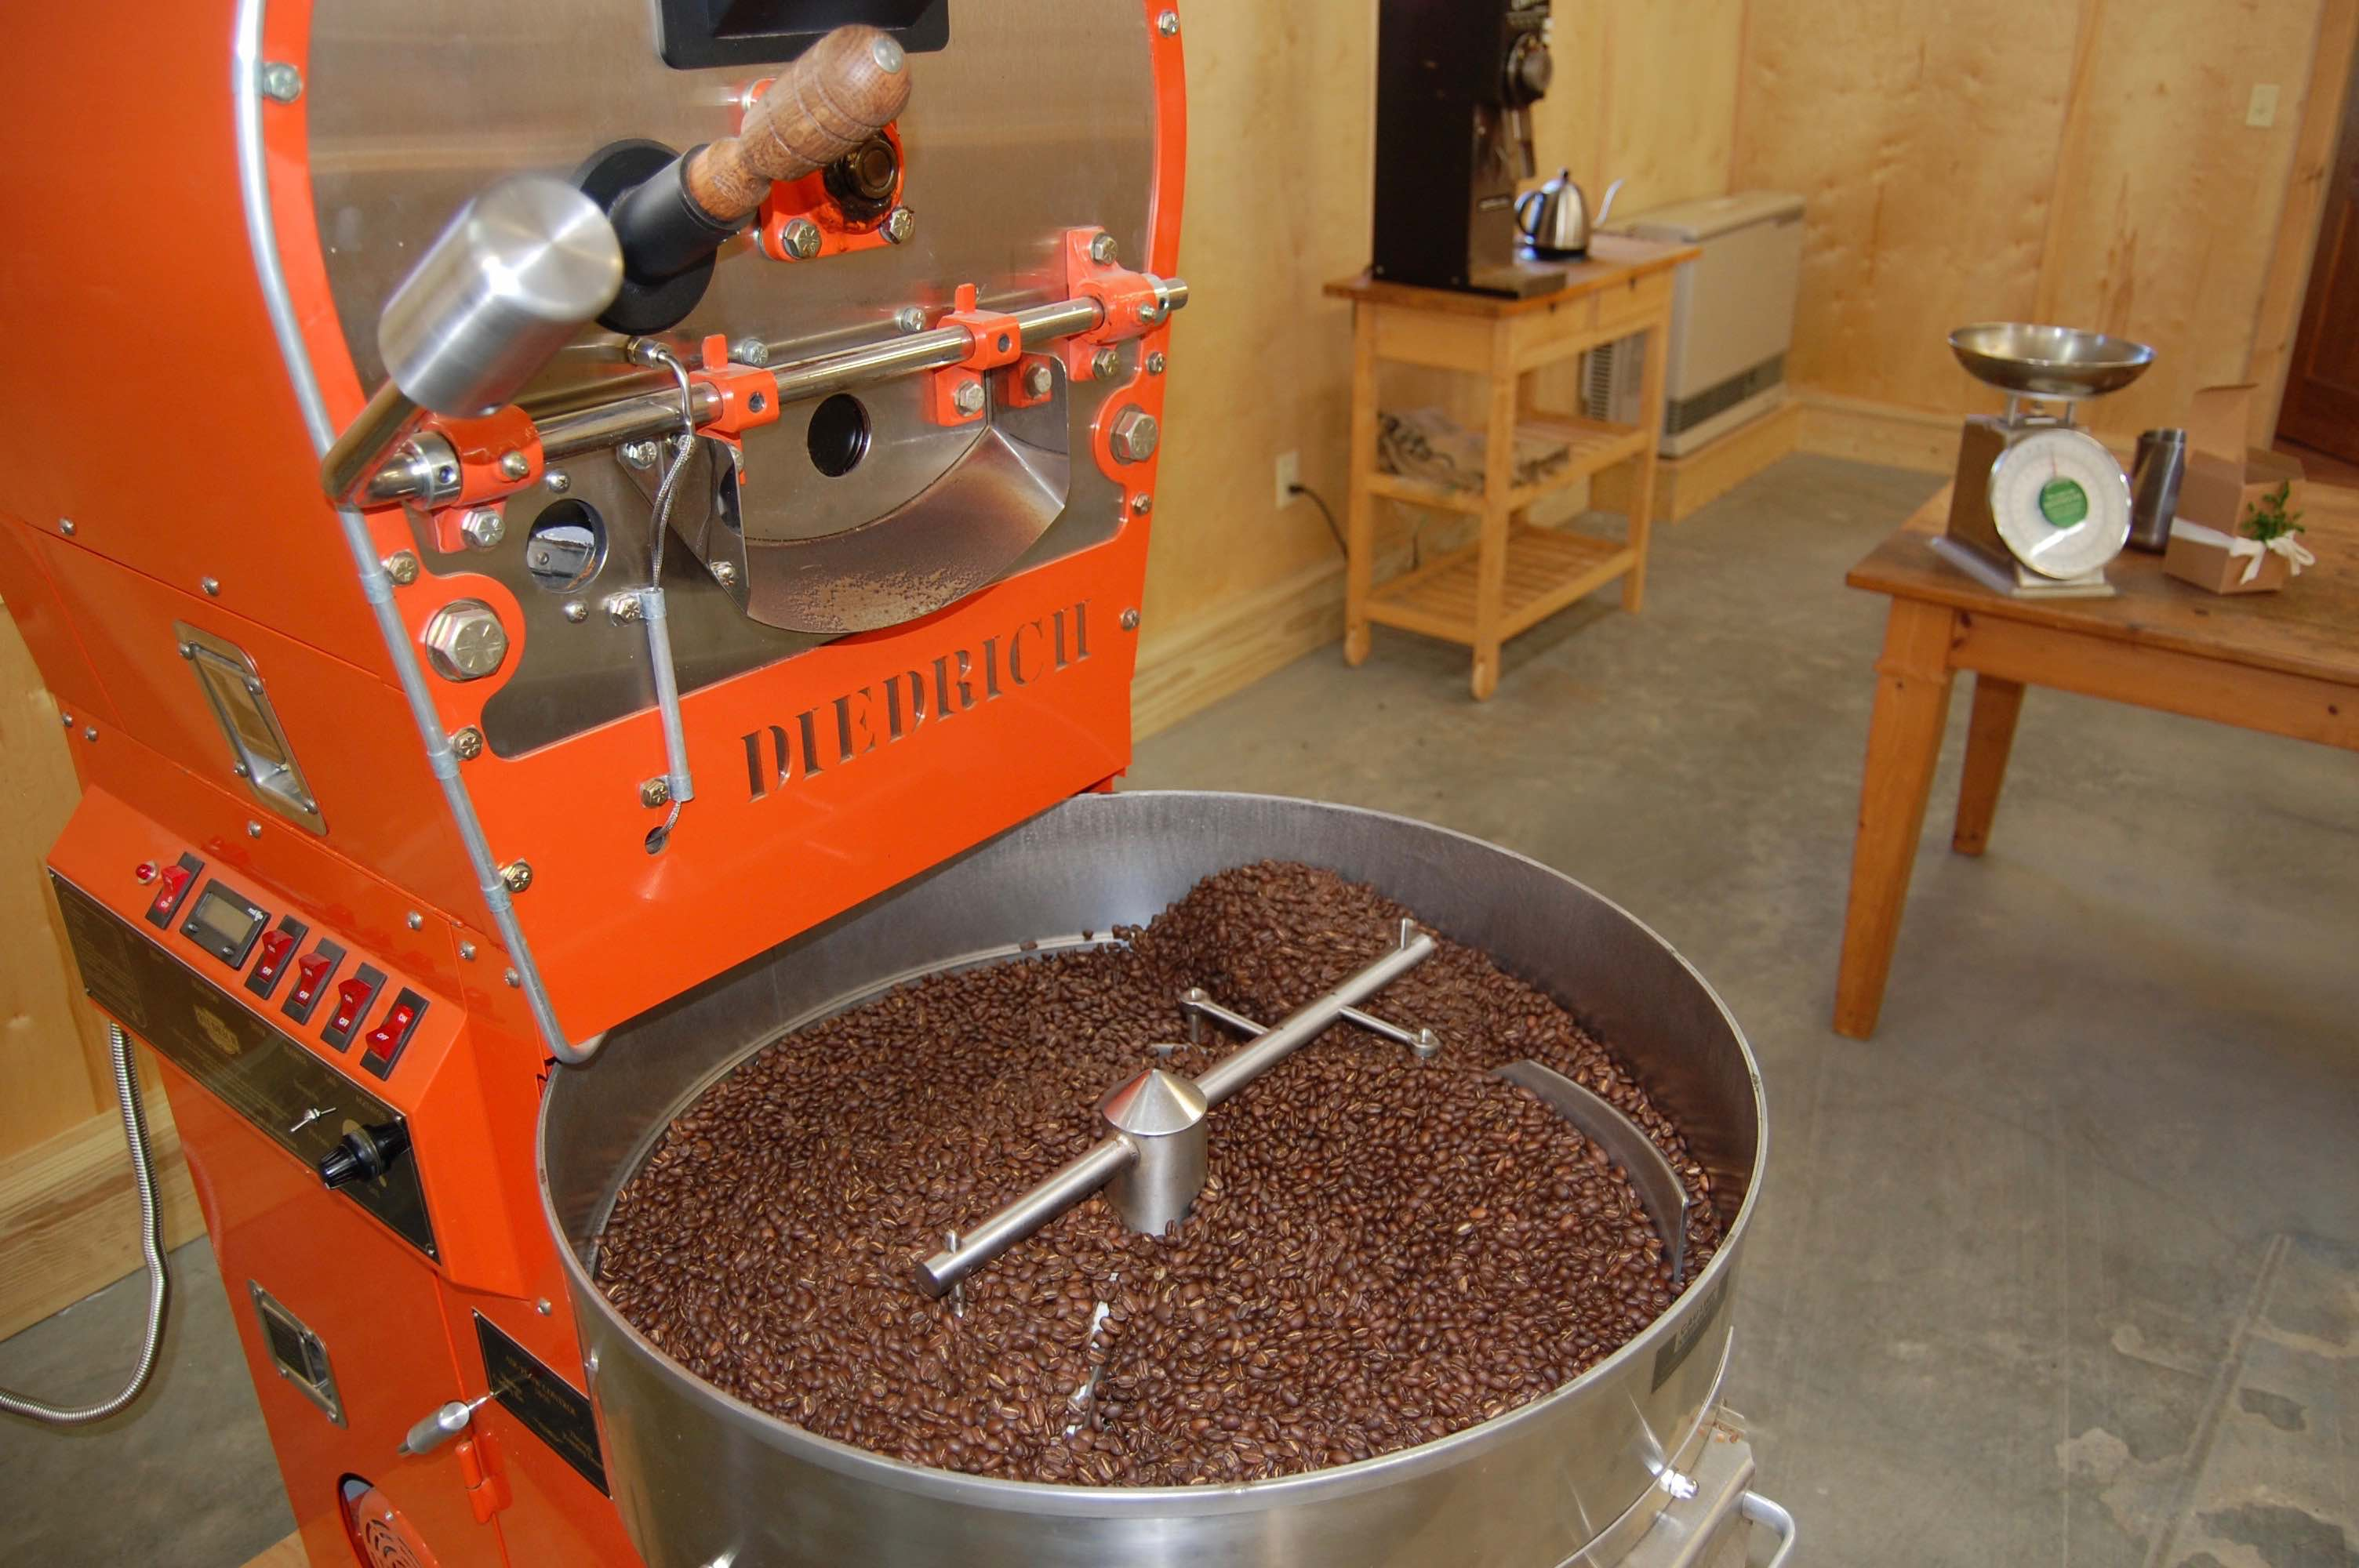 new-roaster-new-location.jpg